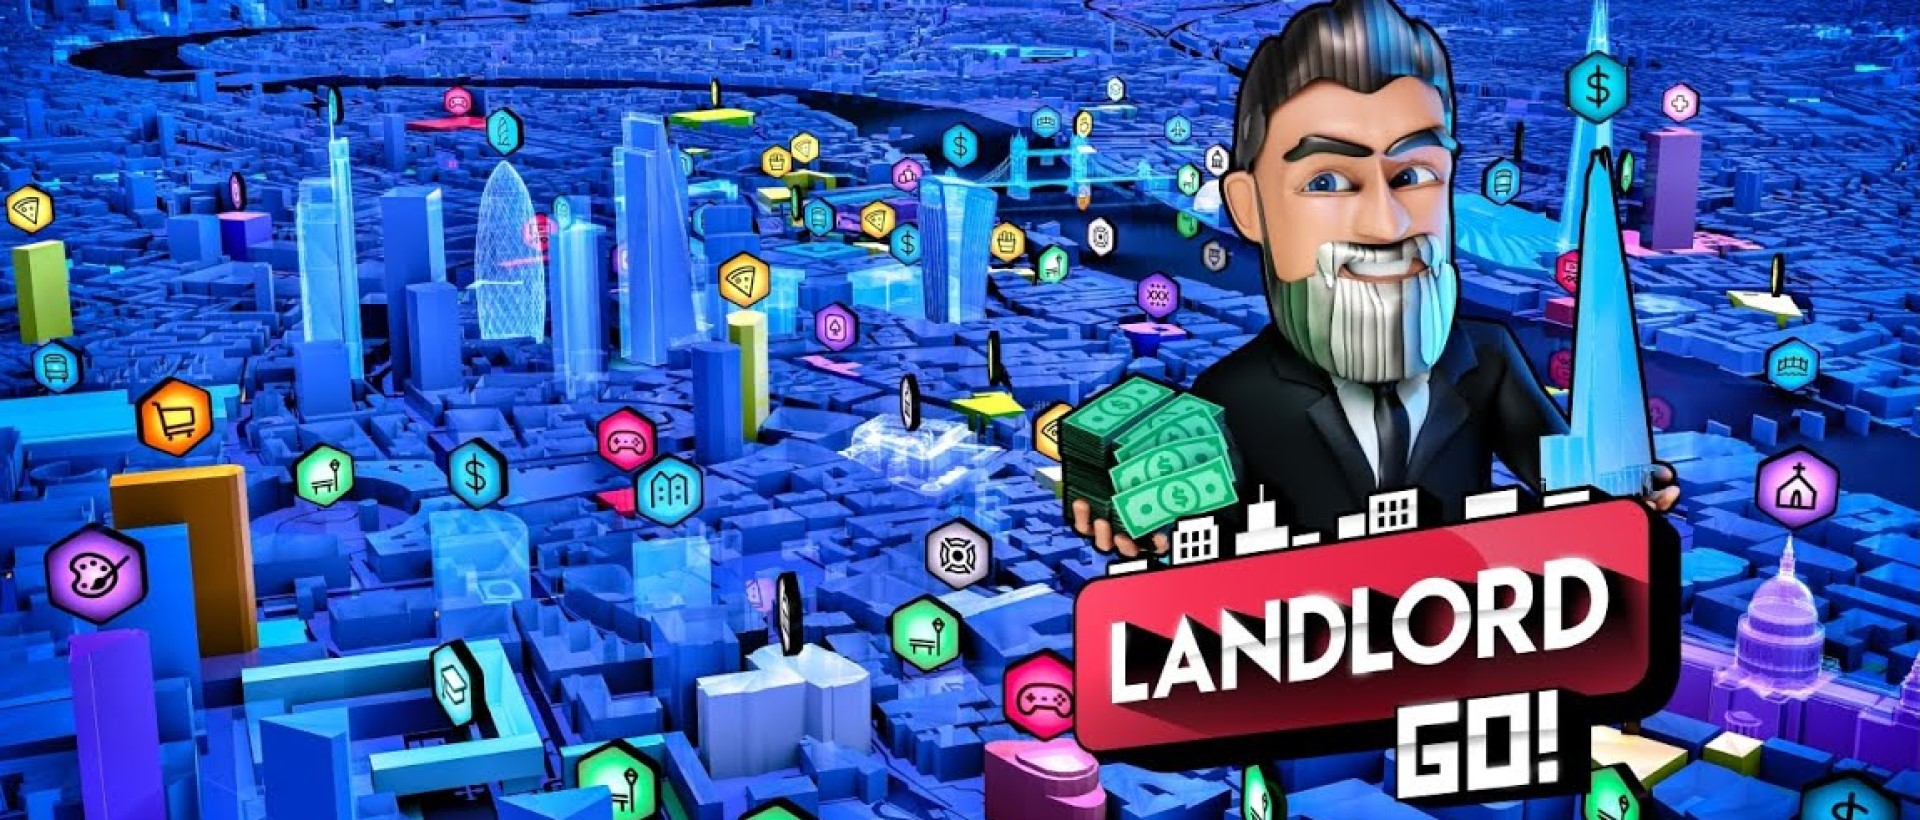 Landlord GO - The Business Game